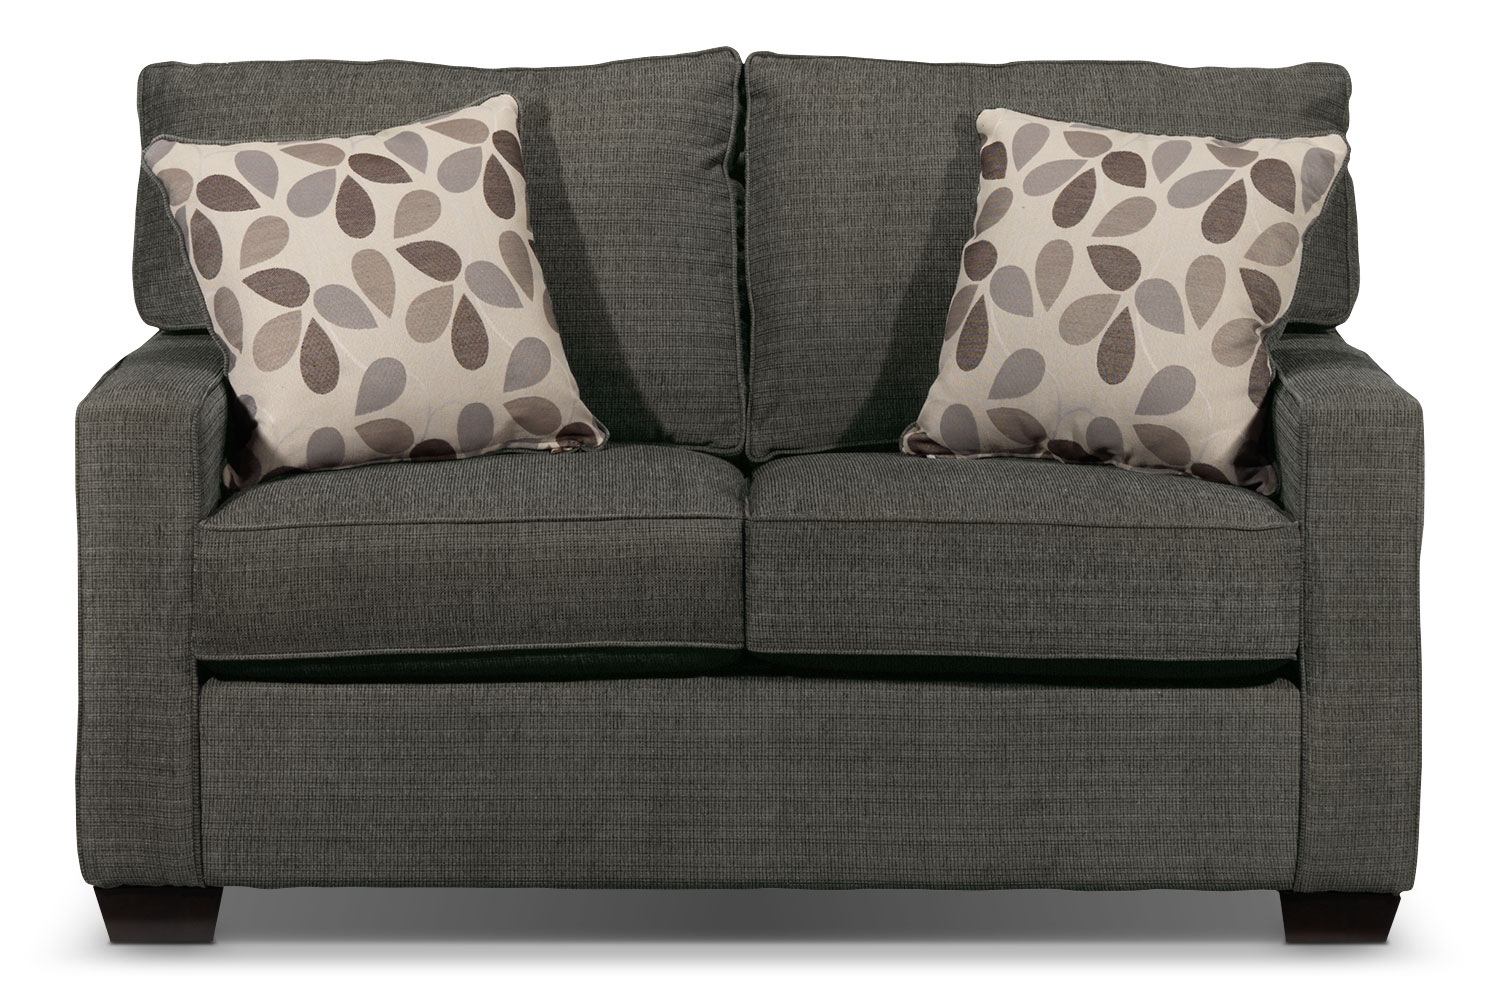 Living Room Furniture - Perkin Loveseat - Graphite